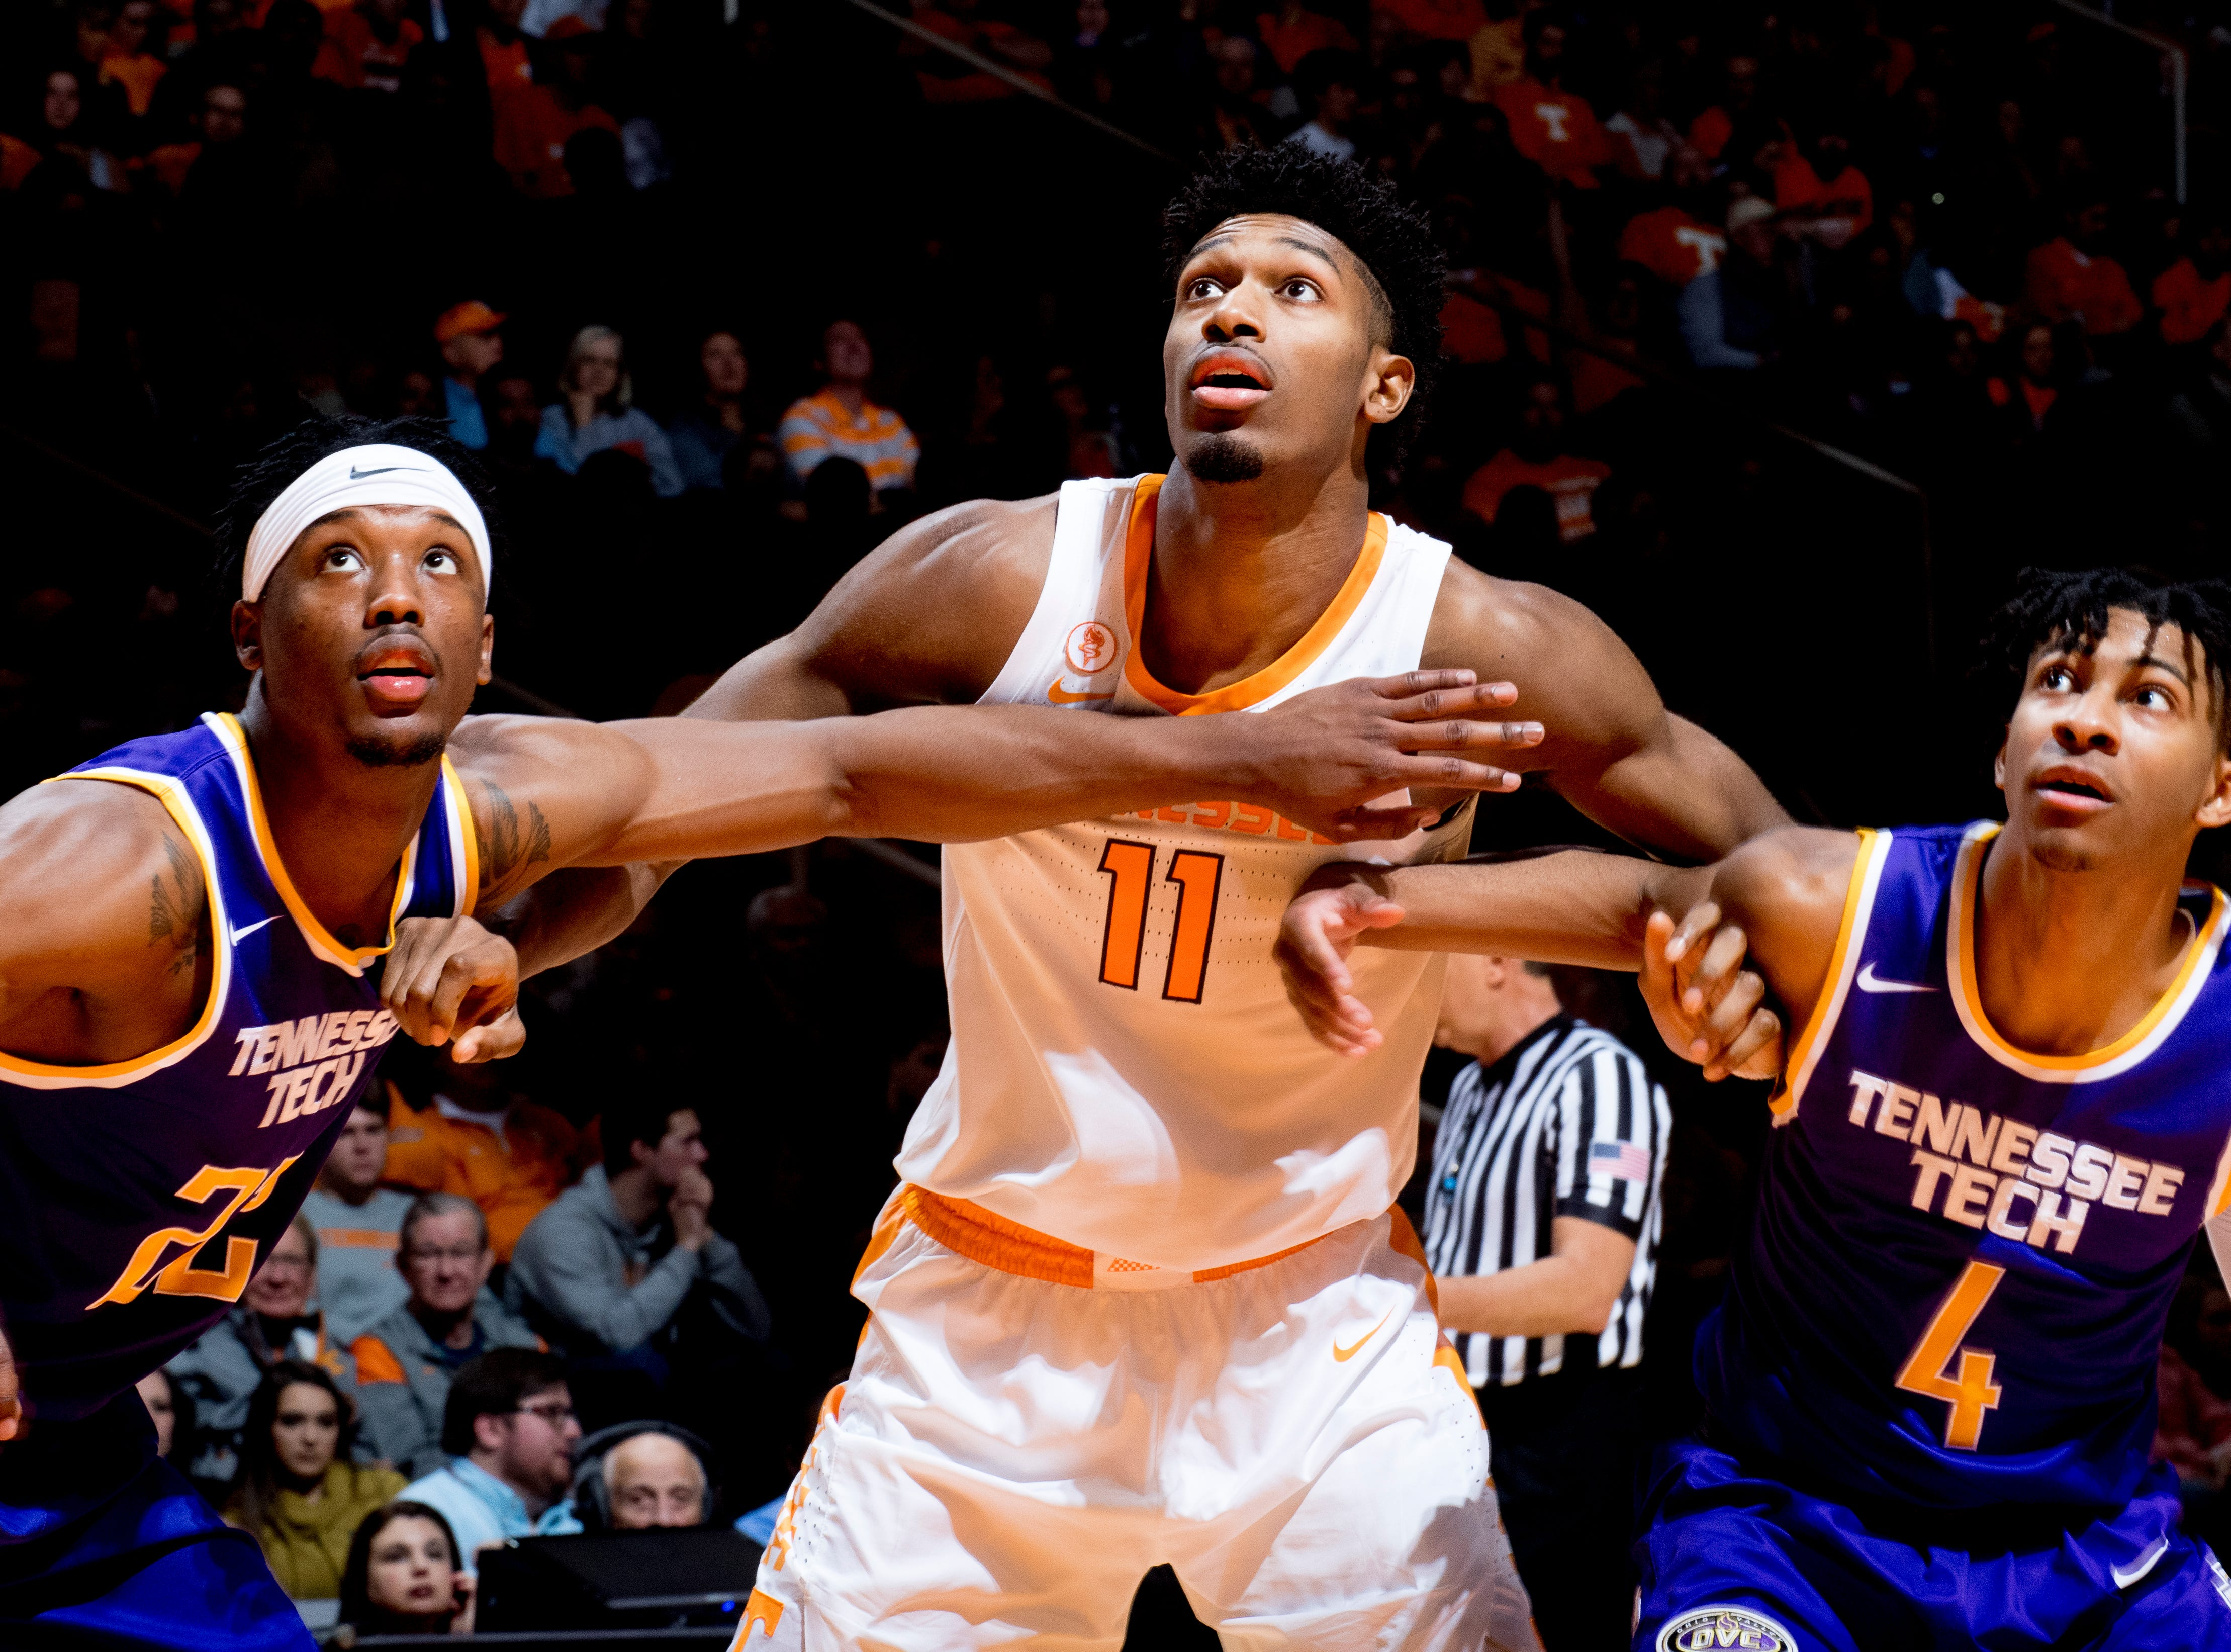 Tennessee forward Kyle Alexander (11), Tennessee Tech forward Courtney Alexander II (22) and Tennessee Tech guard Jr. Clay (4) eye the rebound ball during a game between Tennessee and Tennessee Tech at Thompson-Boling Arena in Knoxville, Tennessee on Saturday, December 29, 2018.